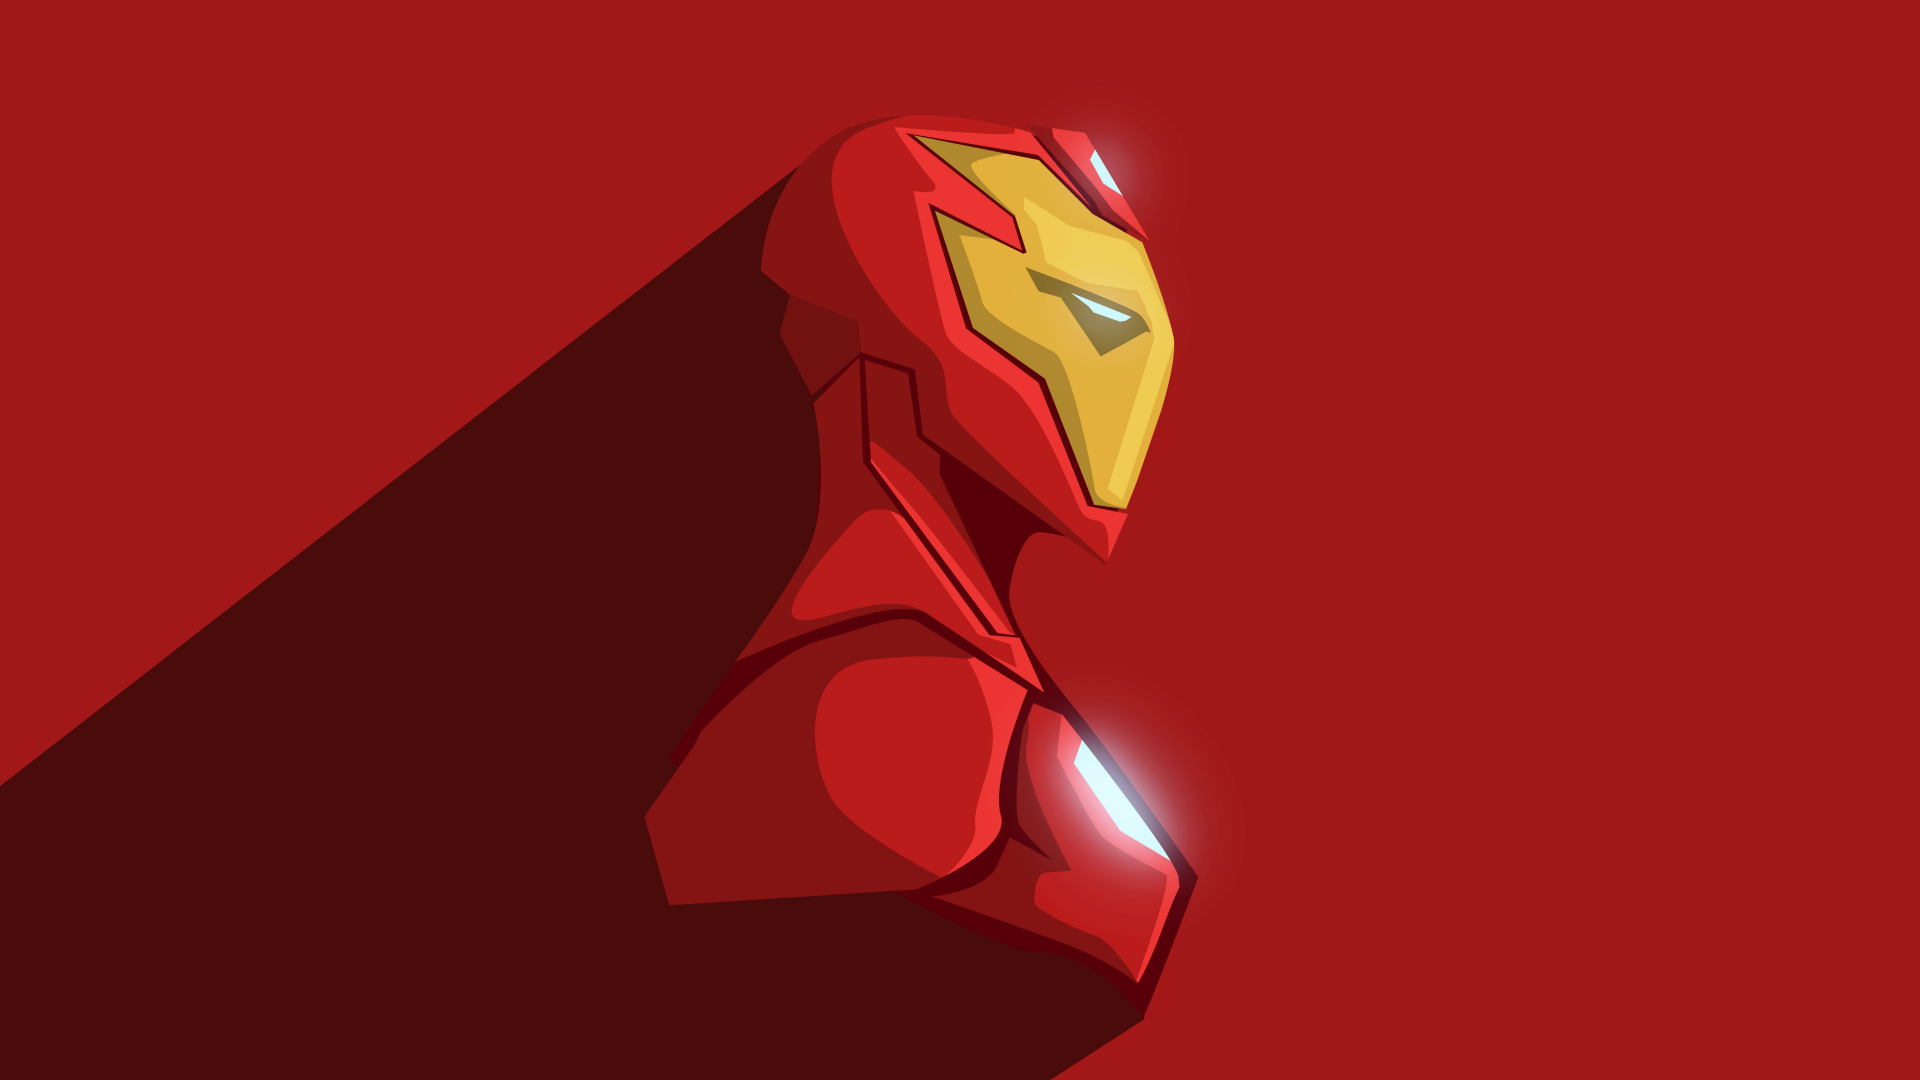 Iron Man Wallpaper - Iron Man Wallpaper 4k , HD Wallpaper & Backgrounds